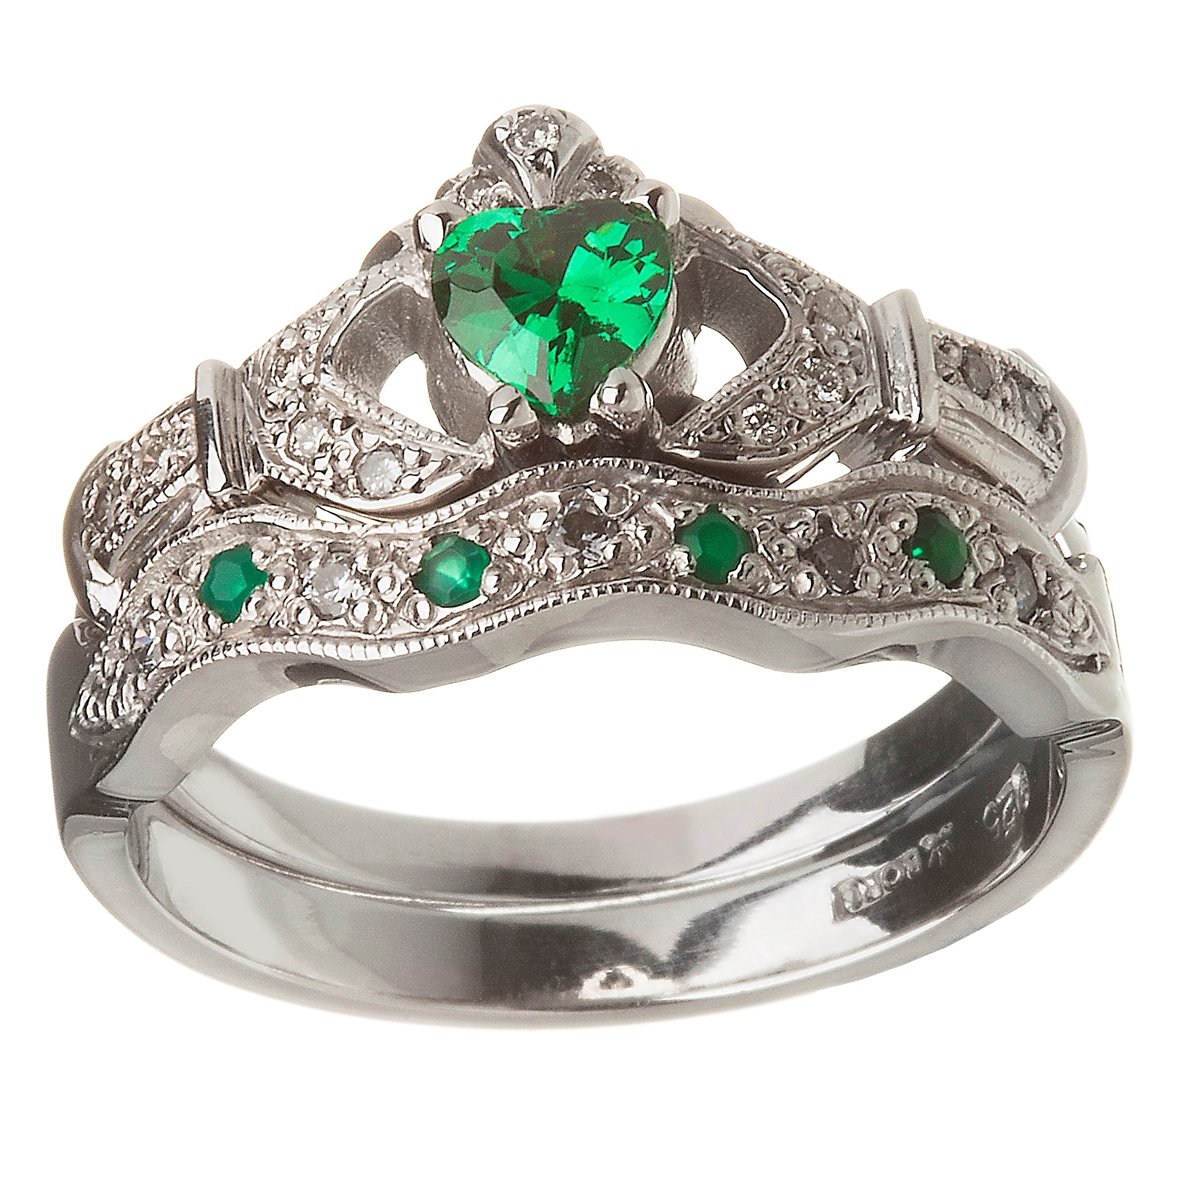 sheffield emerald beautiful r anna engagement rings wedding bridal bea hbz fashion unique green